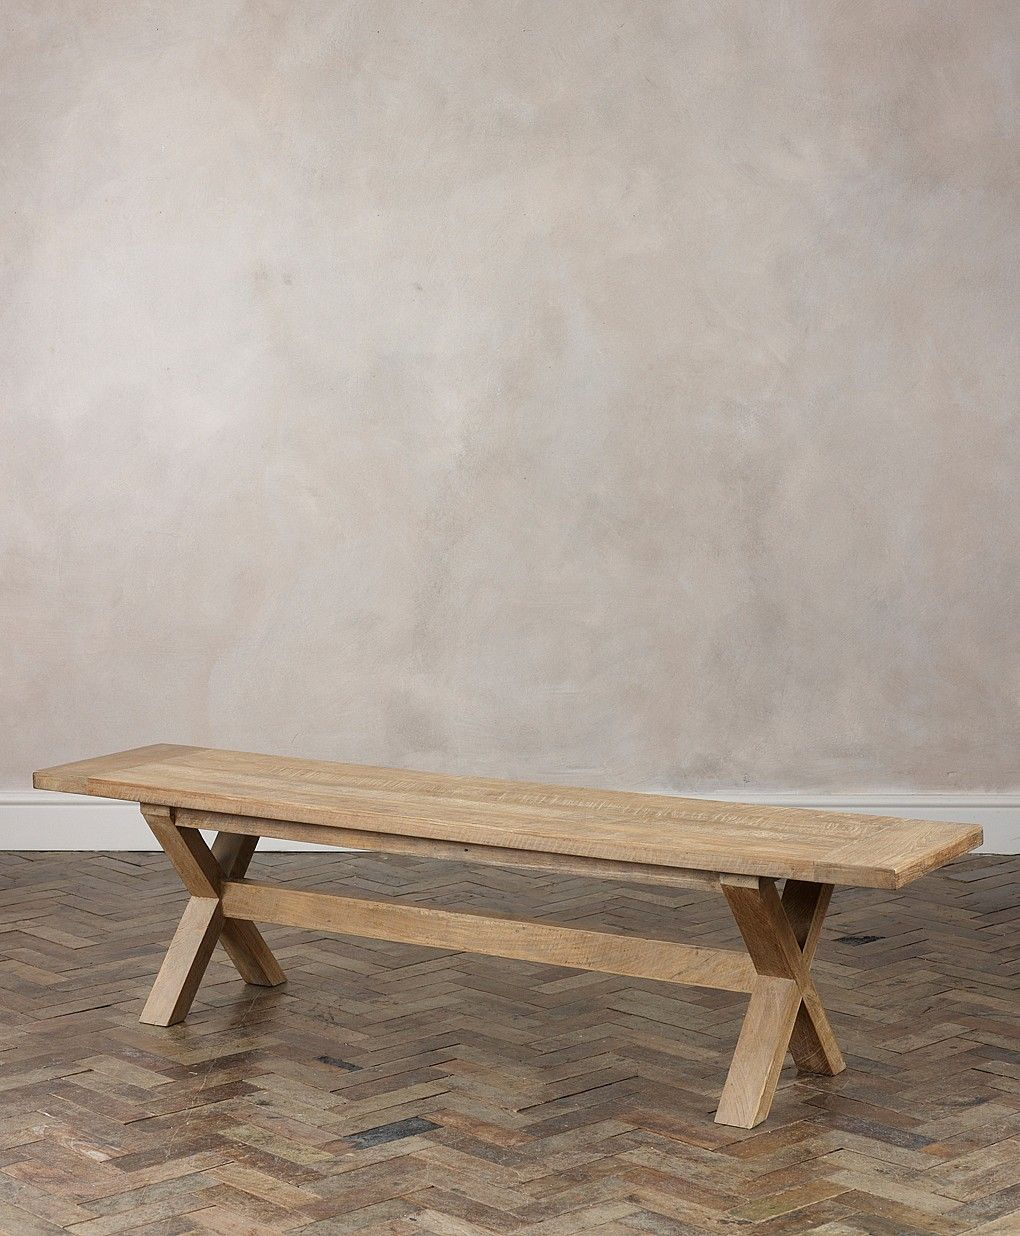 Padang Teak Bench By Lombok Wooden Bench Seat Wooden Bench Lombok Furniture #wooden #benches #for #living #room